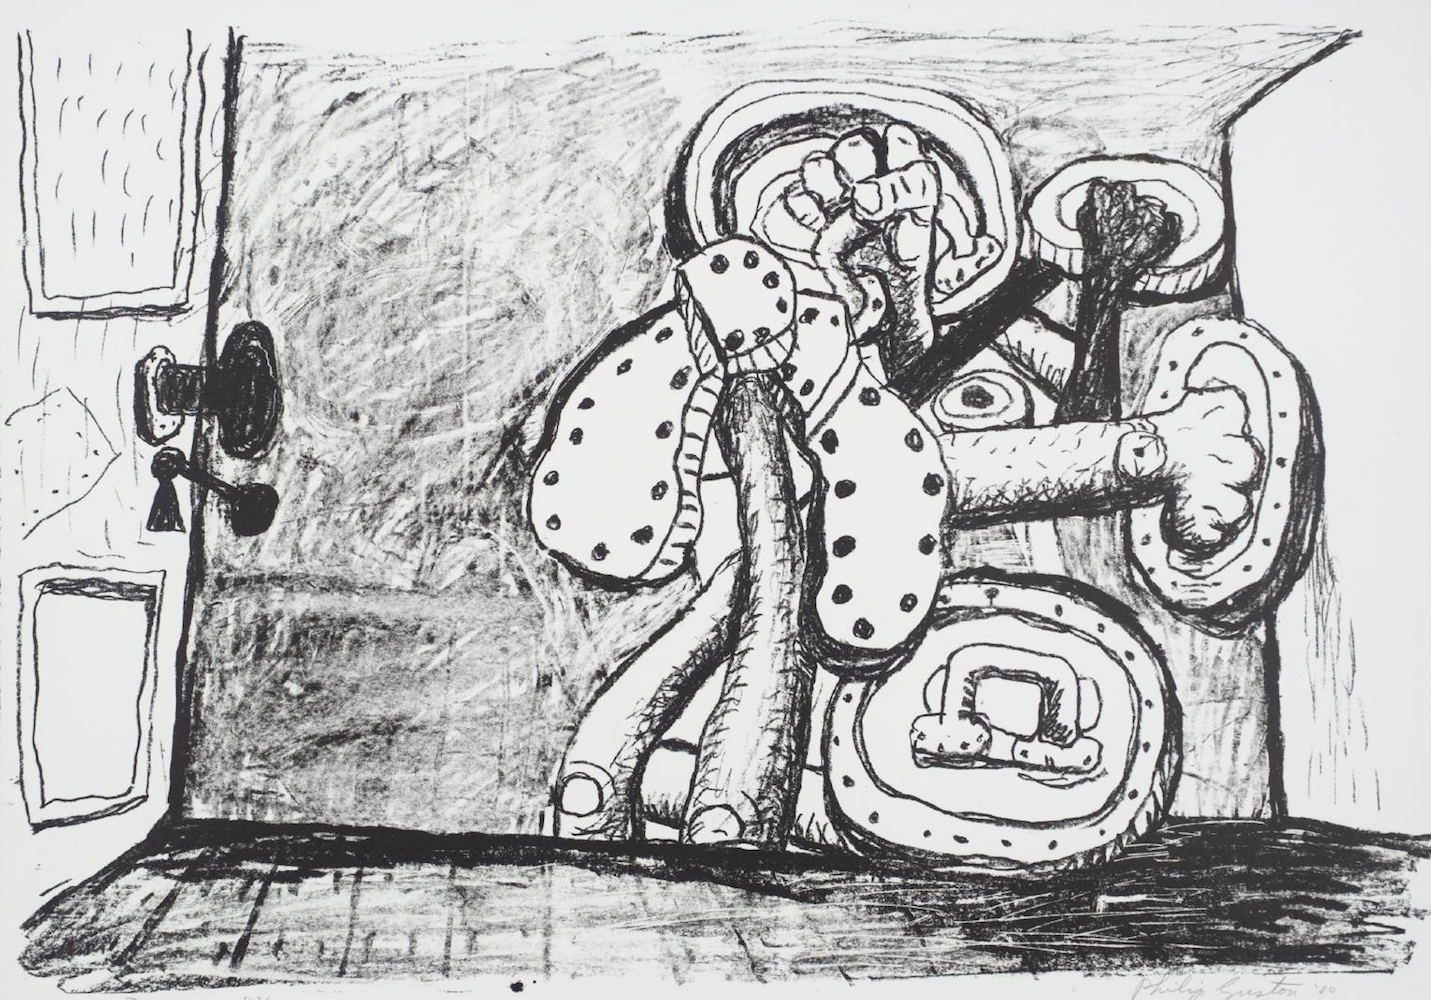 Philip Guston, Door, 1980, lithograph, 22 x 30 inches, edition 16/50, signed by artist, framed, price on request